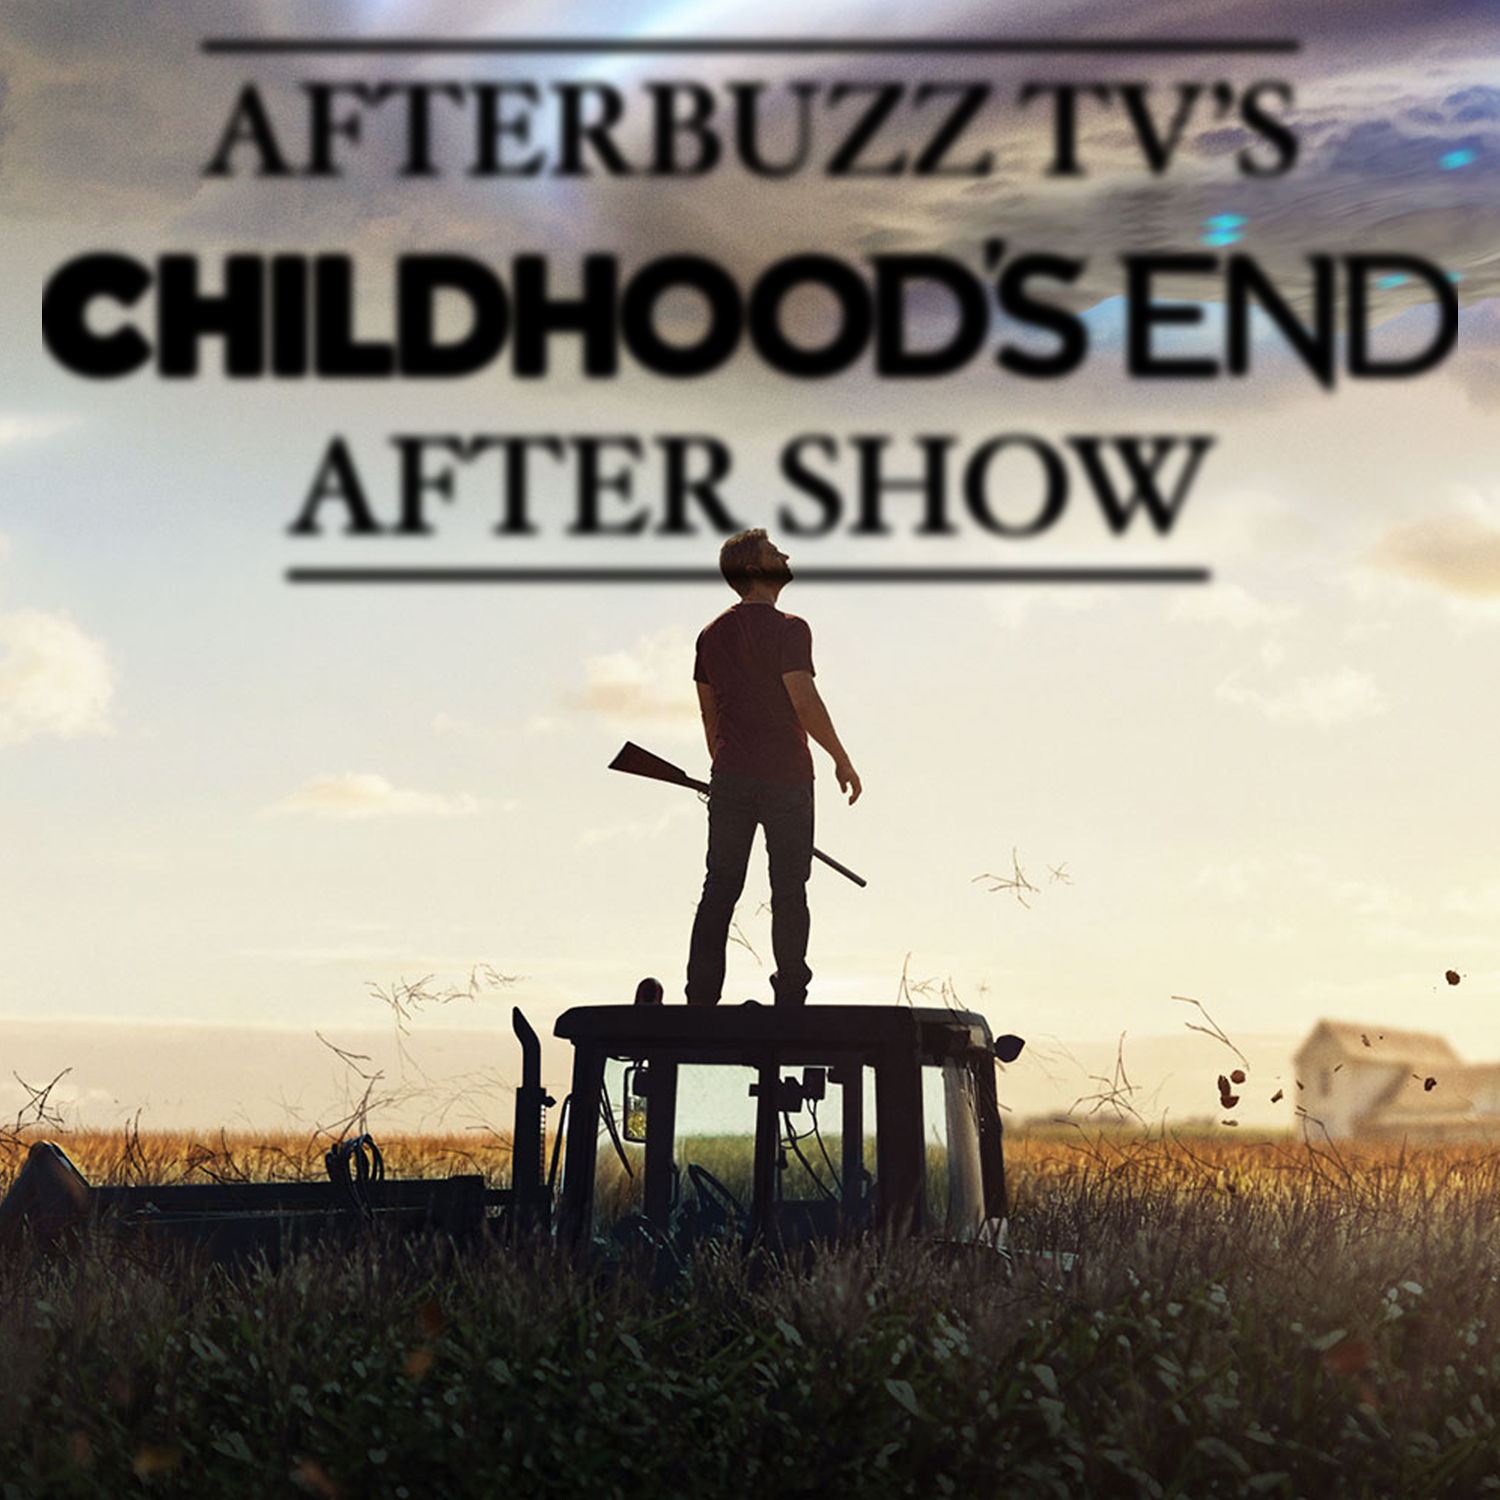 Childhood's End After Show